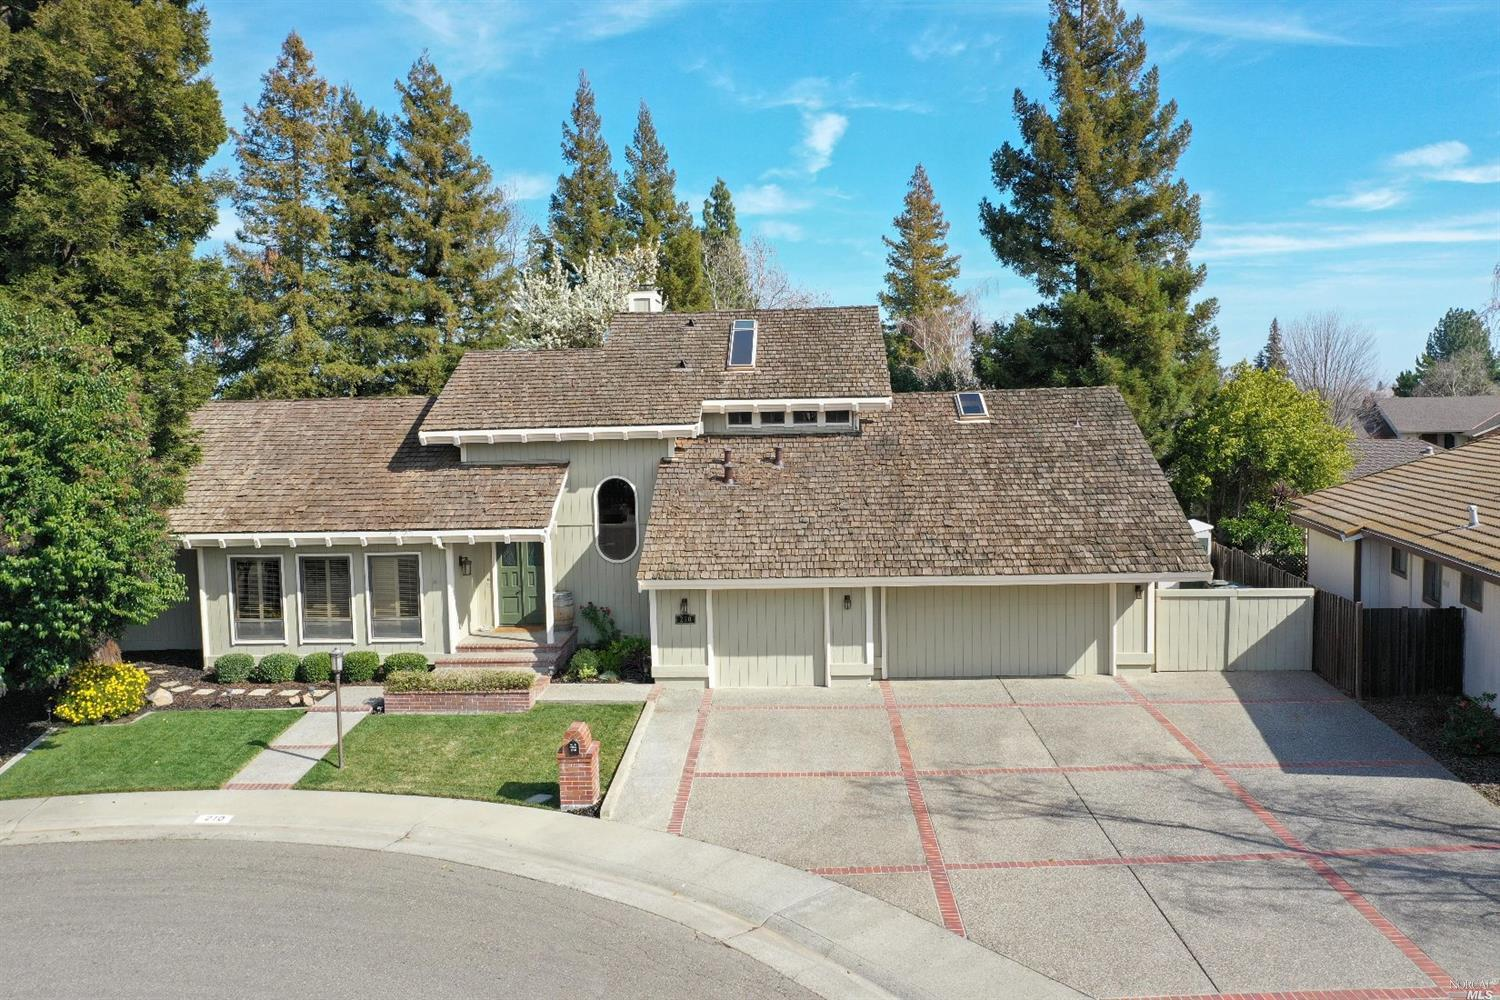 Beautiful custom home in a highly desirable neighborhood. Amazing open-beam vaulted ceilings. Large